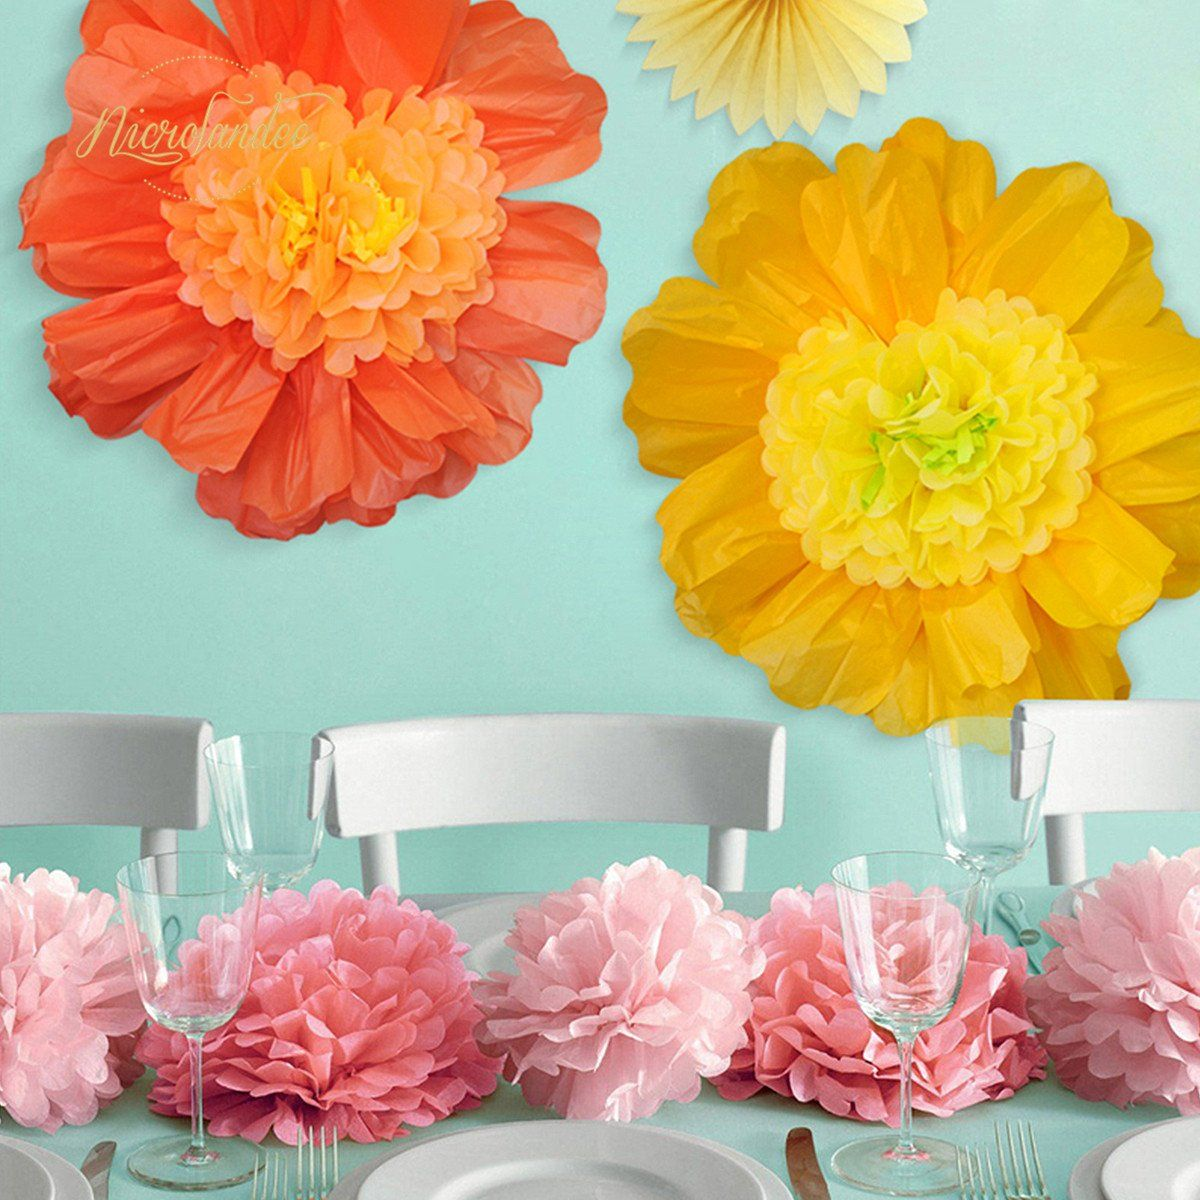 24/'/' 6 Pack//Set LARGE Tissue Paper Flowers Handcrafted Giant For Mexican Wedding